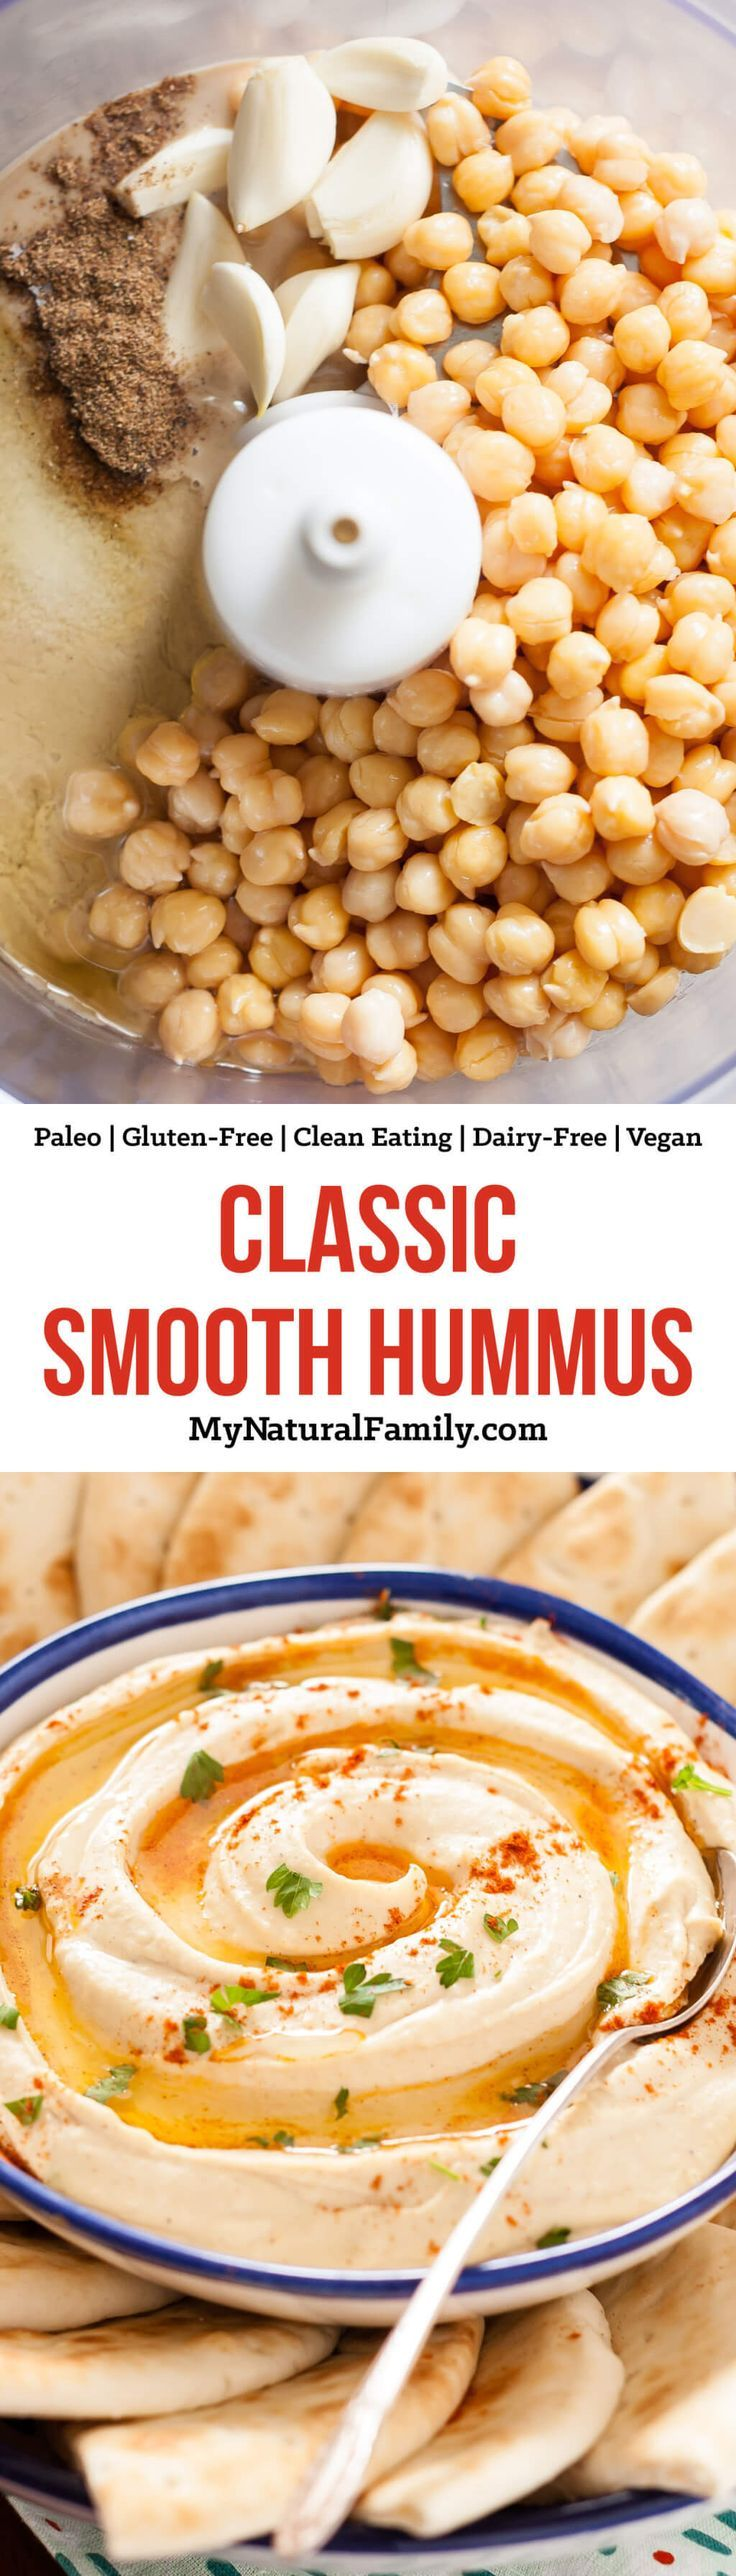 The secret to a perfectly smooth hummus is peeling the skins of the chickpeas off. It is definitely time consuming, but makes a HUGE difference. If you hold each chickpea between two fingers and pinch it a little, the skins will sort of just pop off. it adds about an extra 8-10 minutes to the prep time, but I think it's worth it. You can make the hummus with the skins on, but it will not have the same smooth texture.